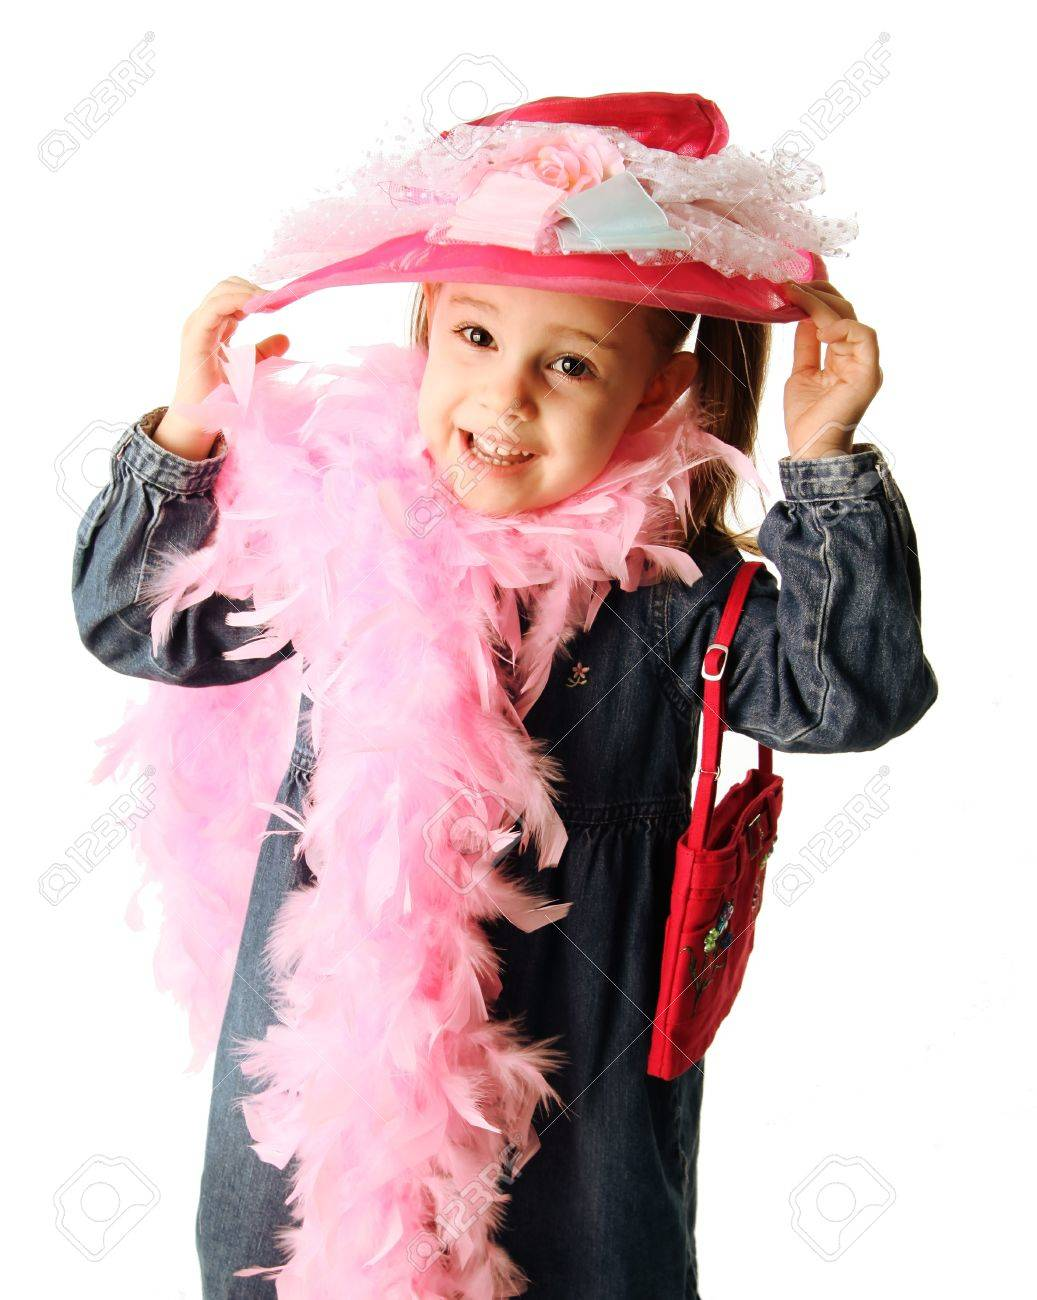 Portrait of an adorable preschool girl playing dress up with a fancy hat, purse, and pearl necklace isolated on white - 8809271